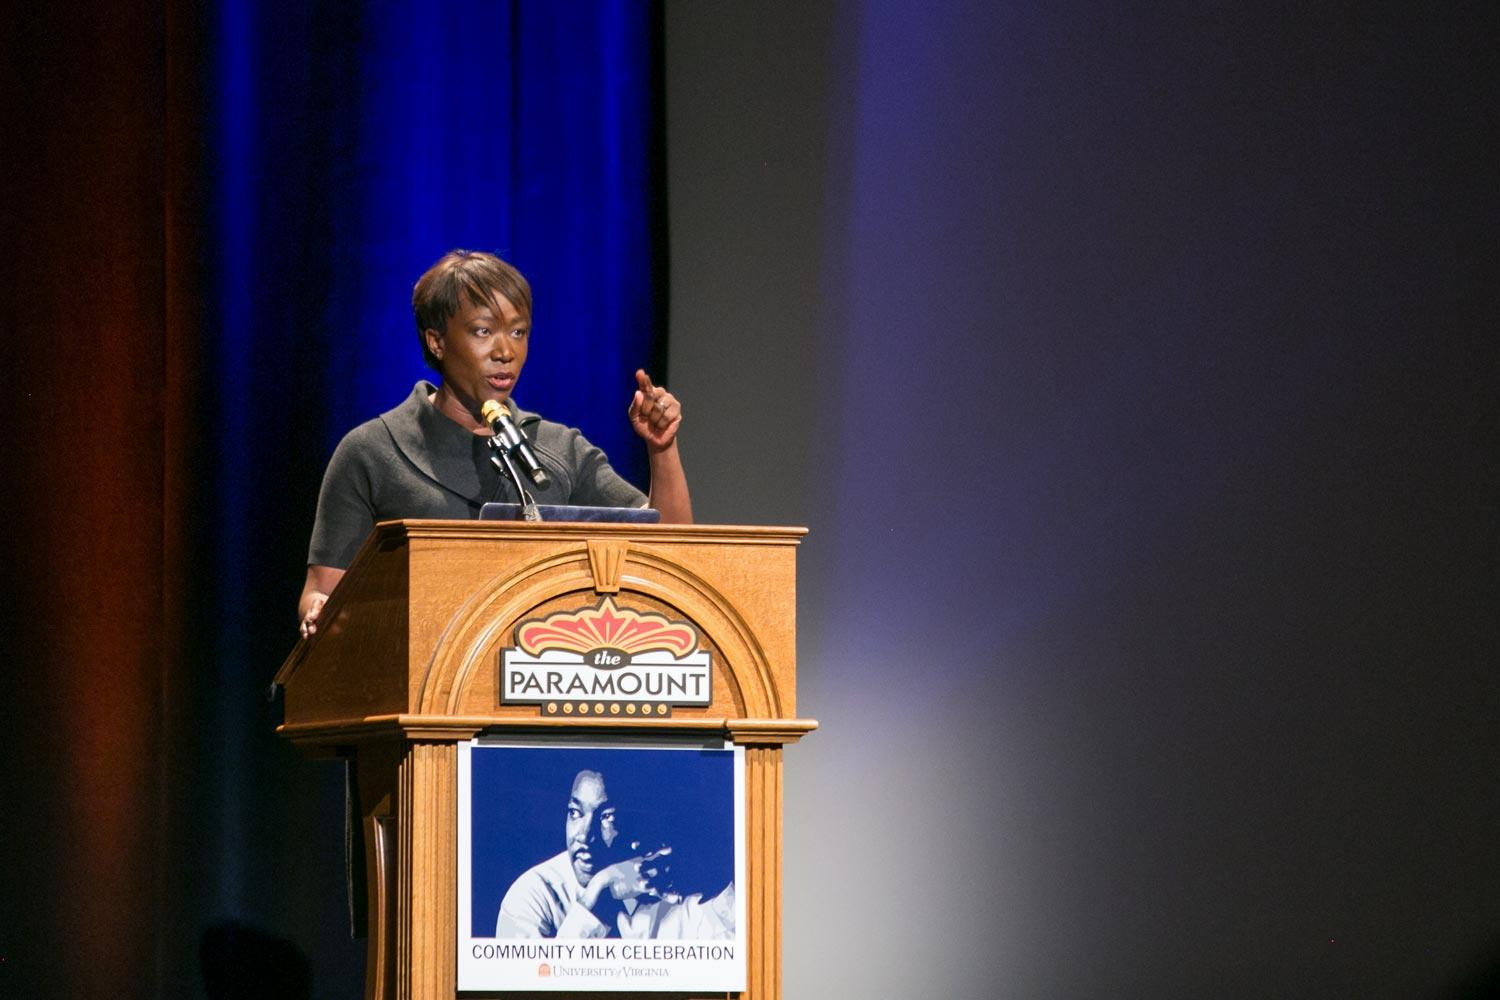 MSNBC journalist Joy Reid gave the keynote address Tuesday at the University of Virginia's Community Martin Luther King Jr. Celebration.